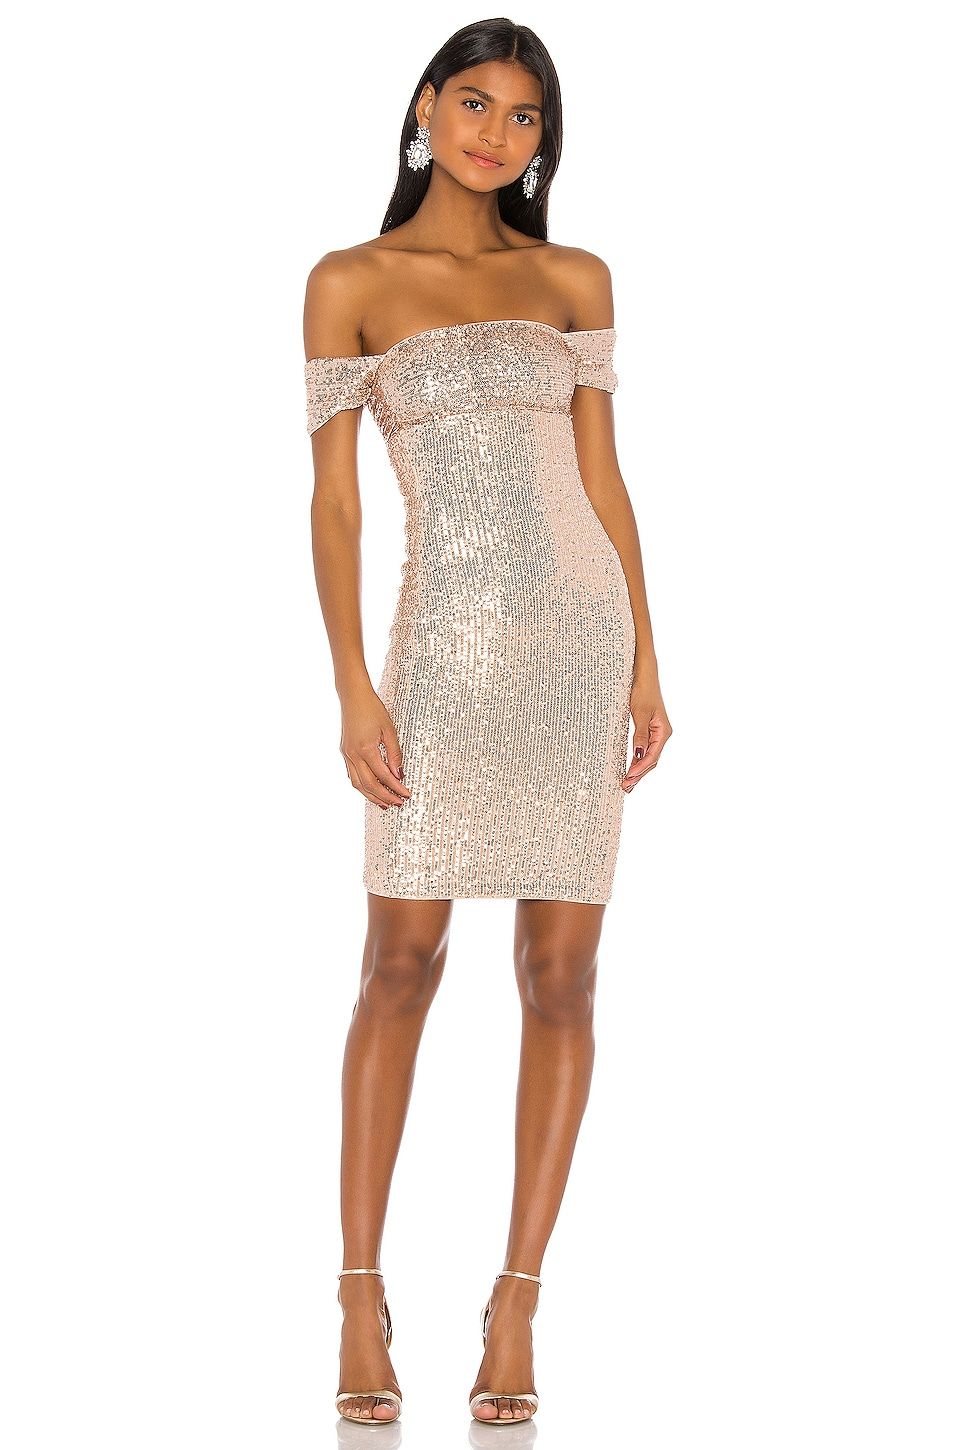 MAJORELLE Lagos Midi Dress in Champagne